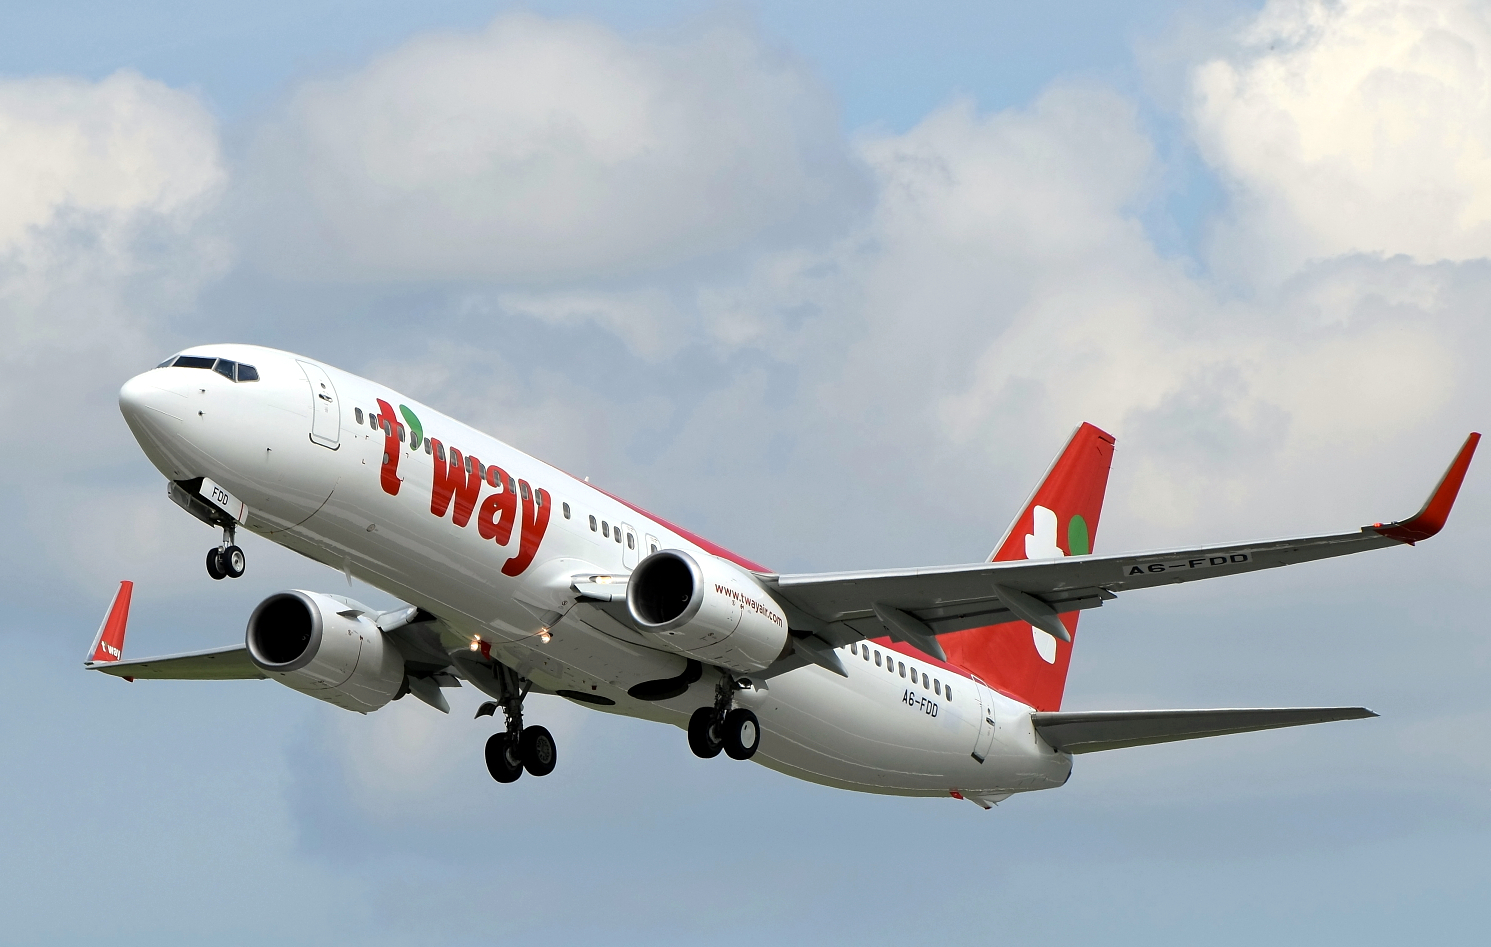 T'Way Air Boeing 737-800 Climbing After Takeoff